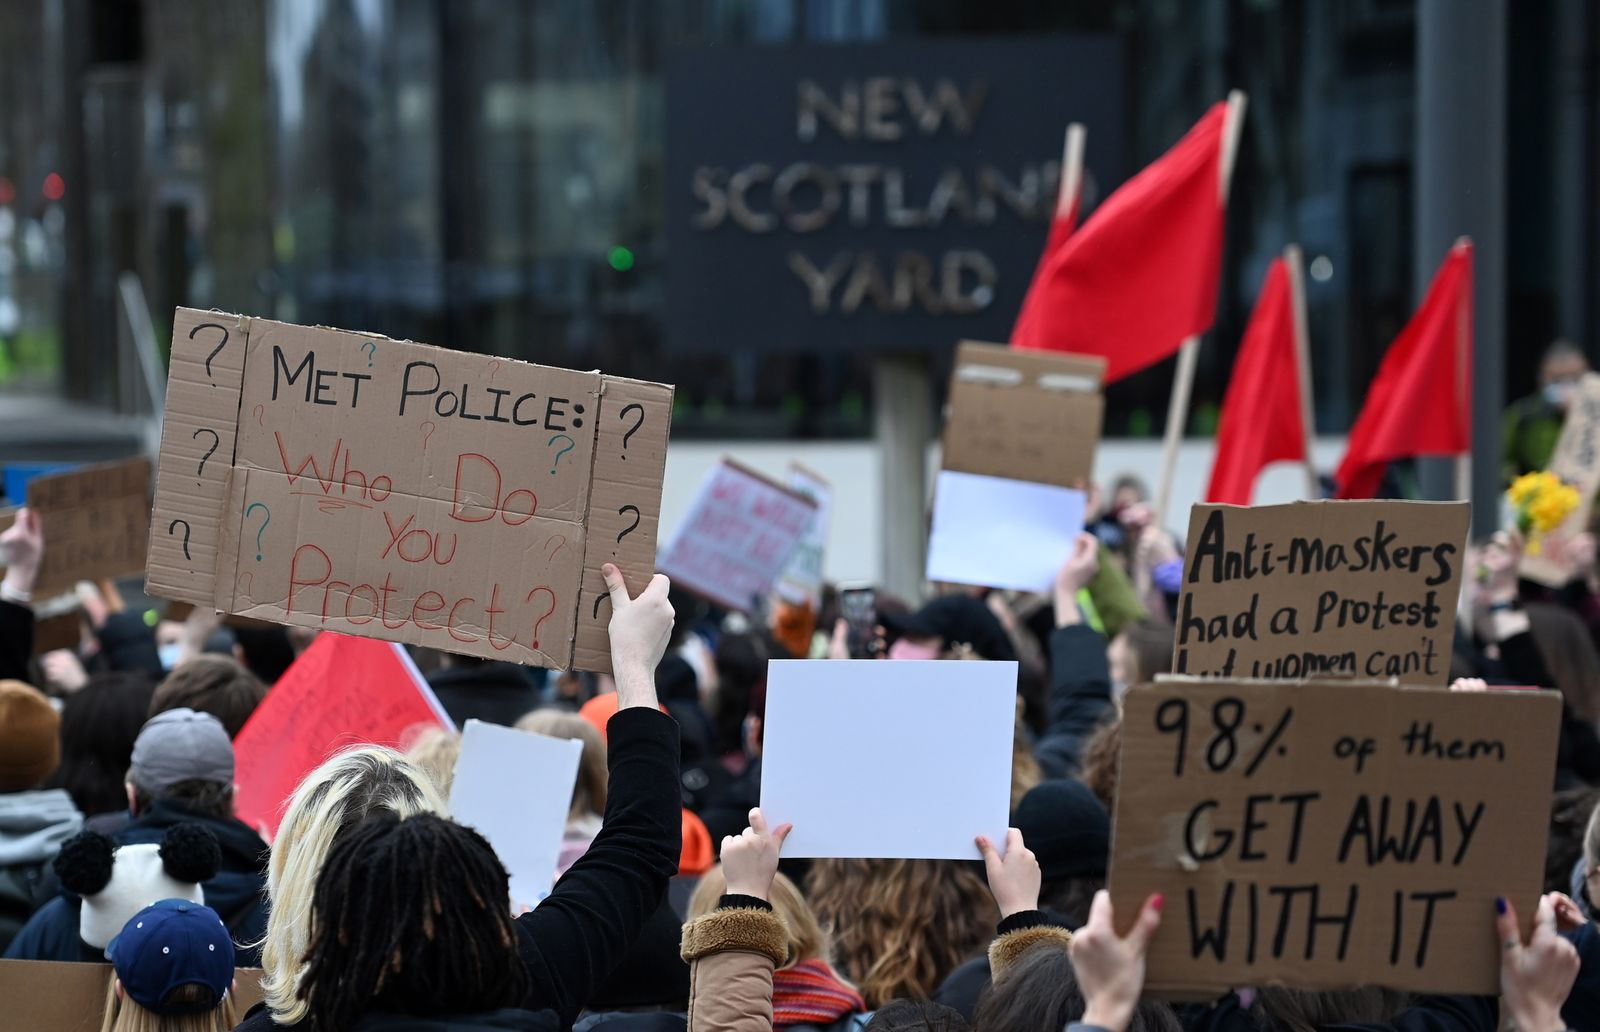 Protesters demonstrate outside Scotland Yard against police brutality following the death of Sarah Everard